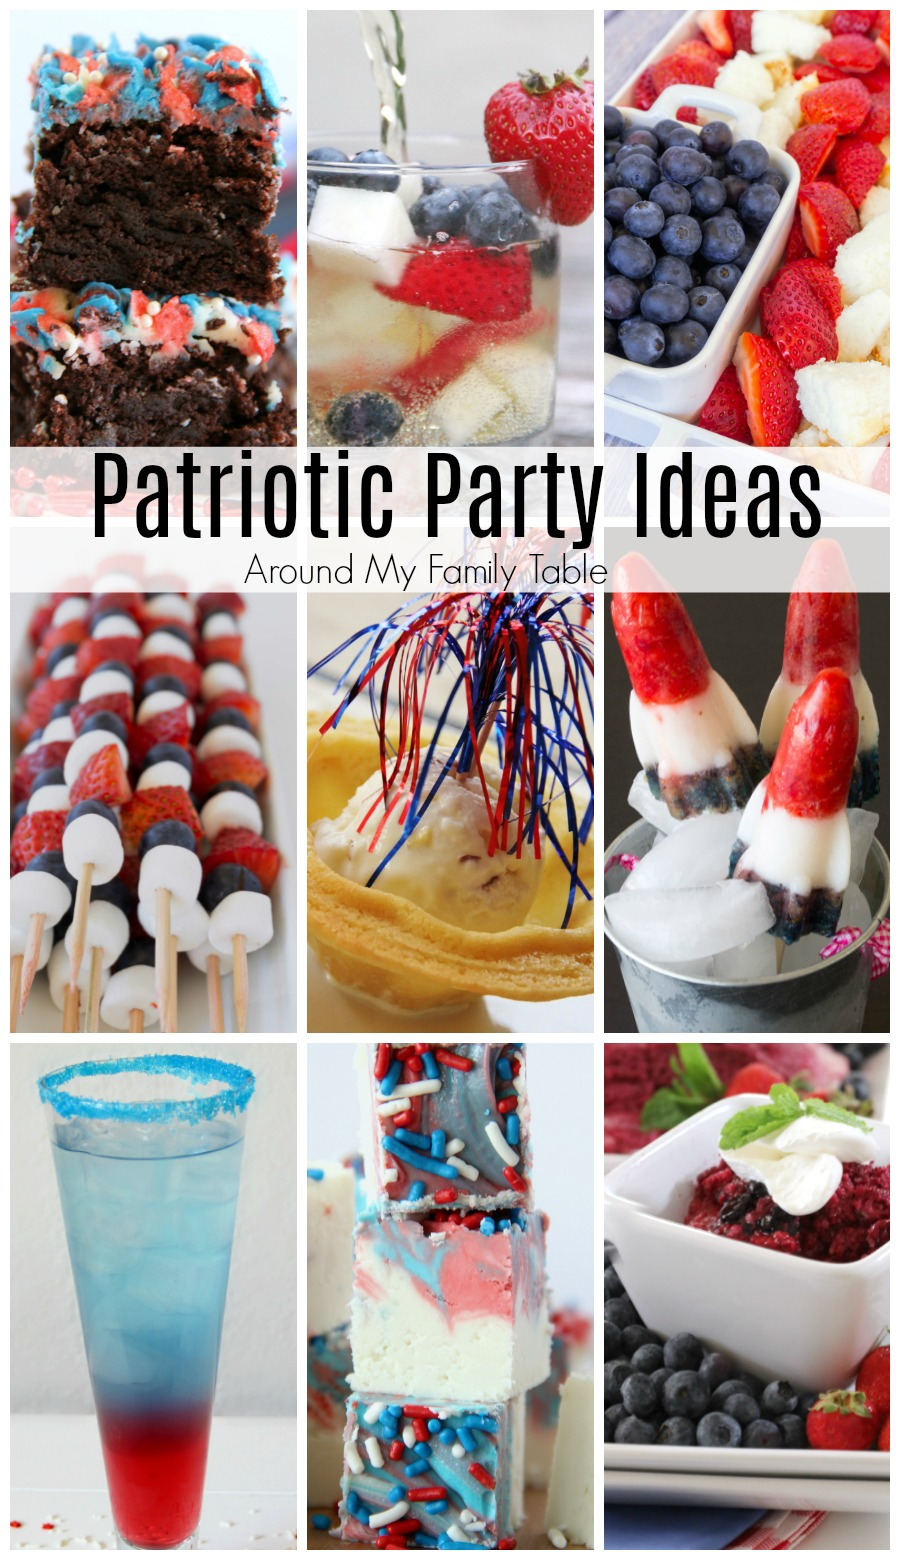 If you are gearing up for a big summer BBQ these Patriotic Party Ideas are sure to get you in the spirit. These red, white, & blue recipe ideas are perfect for any party where you want to show your patriotism.